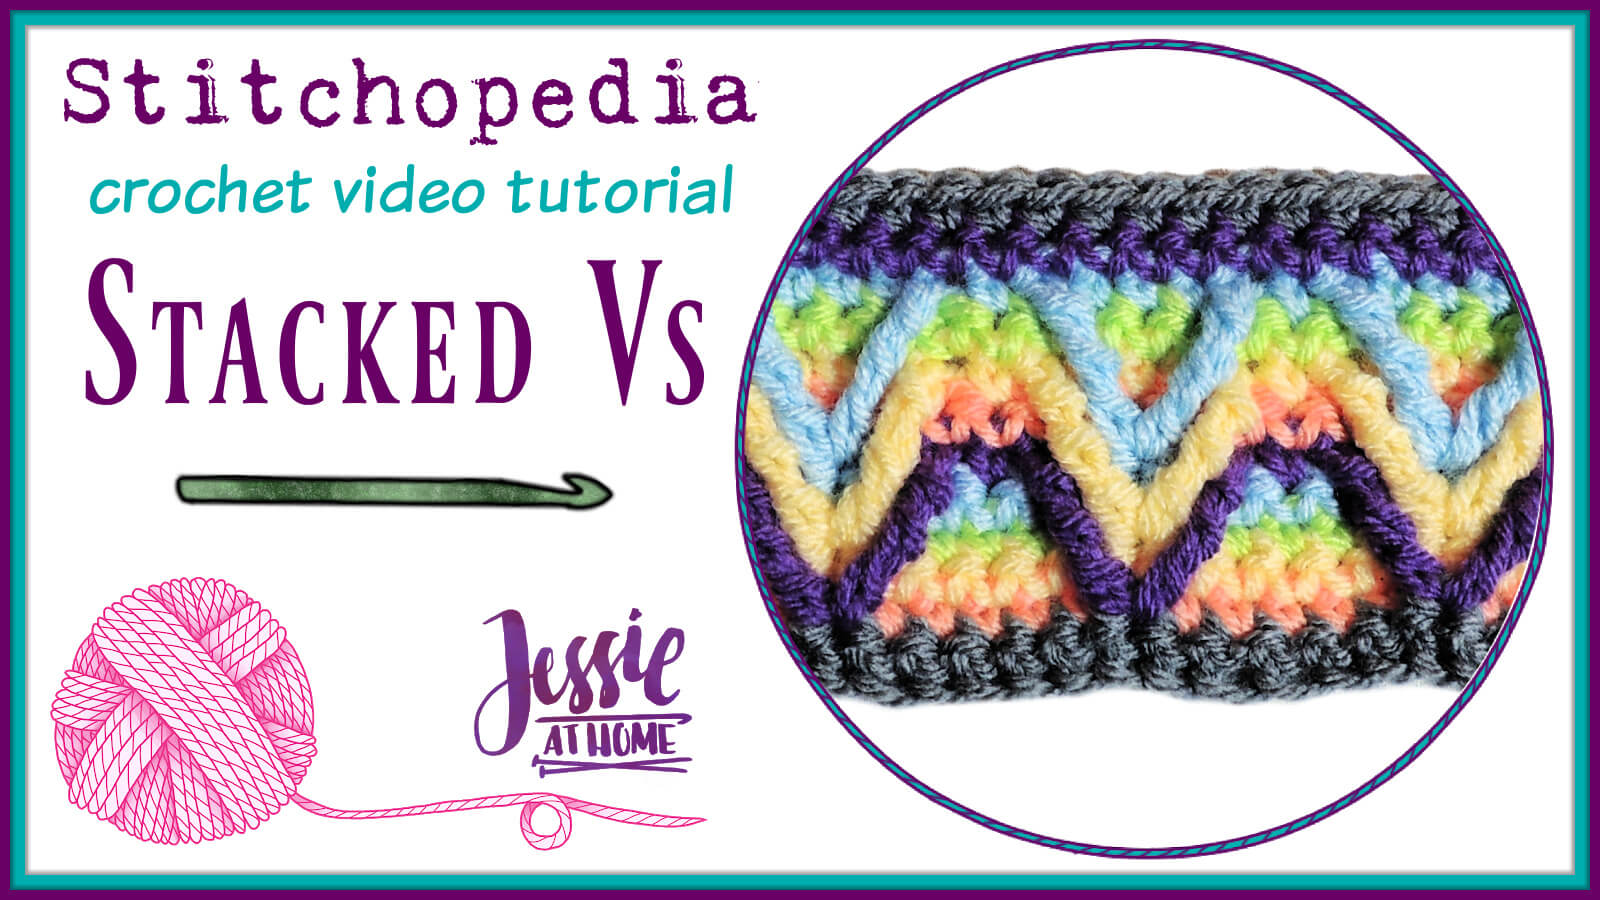 Stacked Vs Stitch Stitchopedia Crochet Video Tutorial by Jessie At Home - Cover